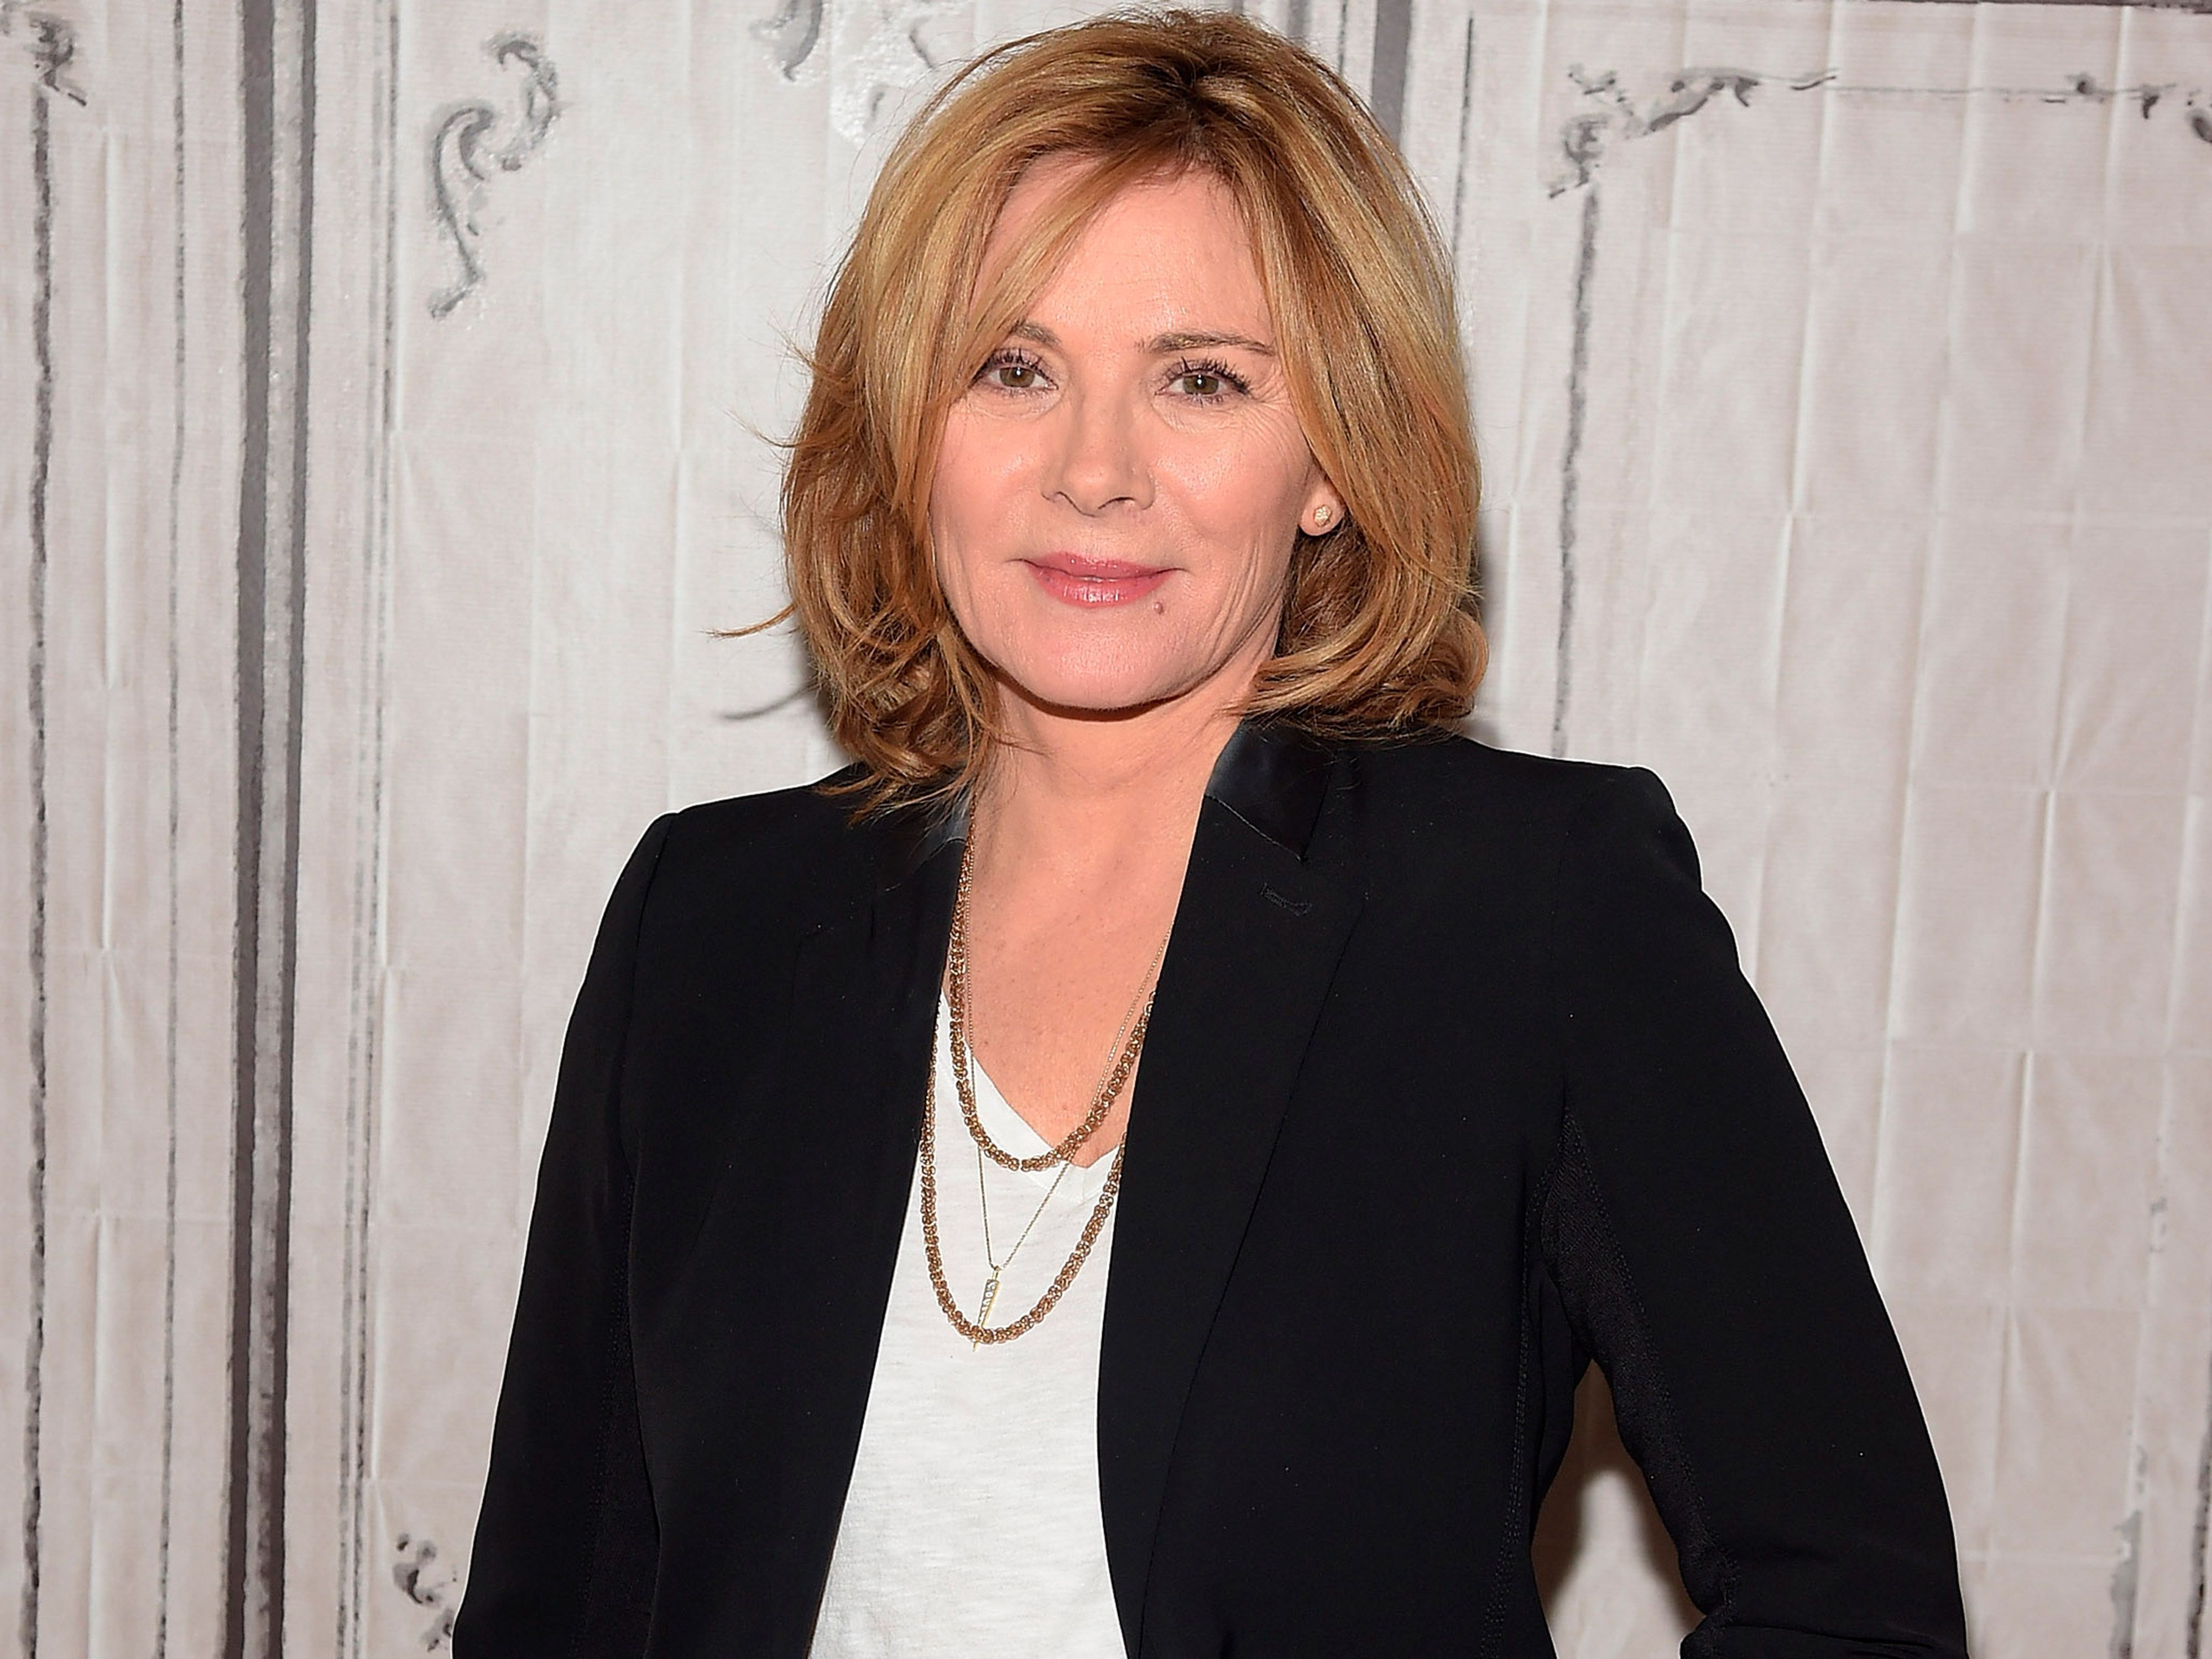 Sex and the City's Kim Cattrall says she's been 'bullied' over refusing to do another movie